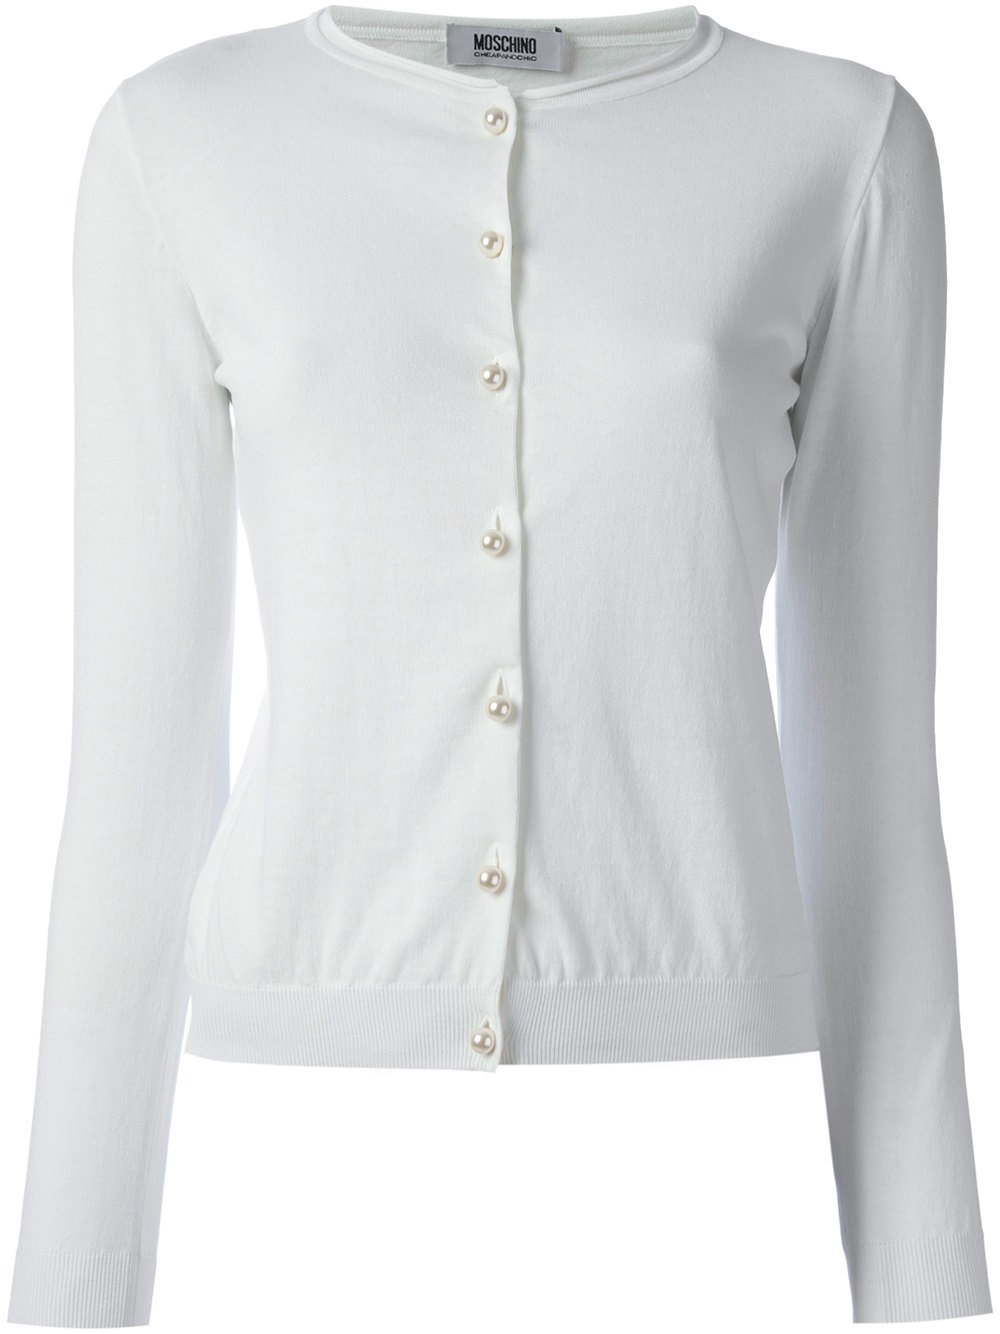 Boutique moschino Crew Neck Cardigan in White | Lyst